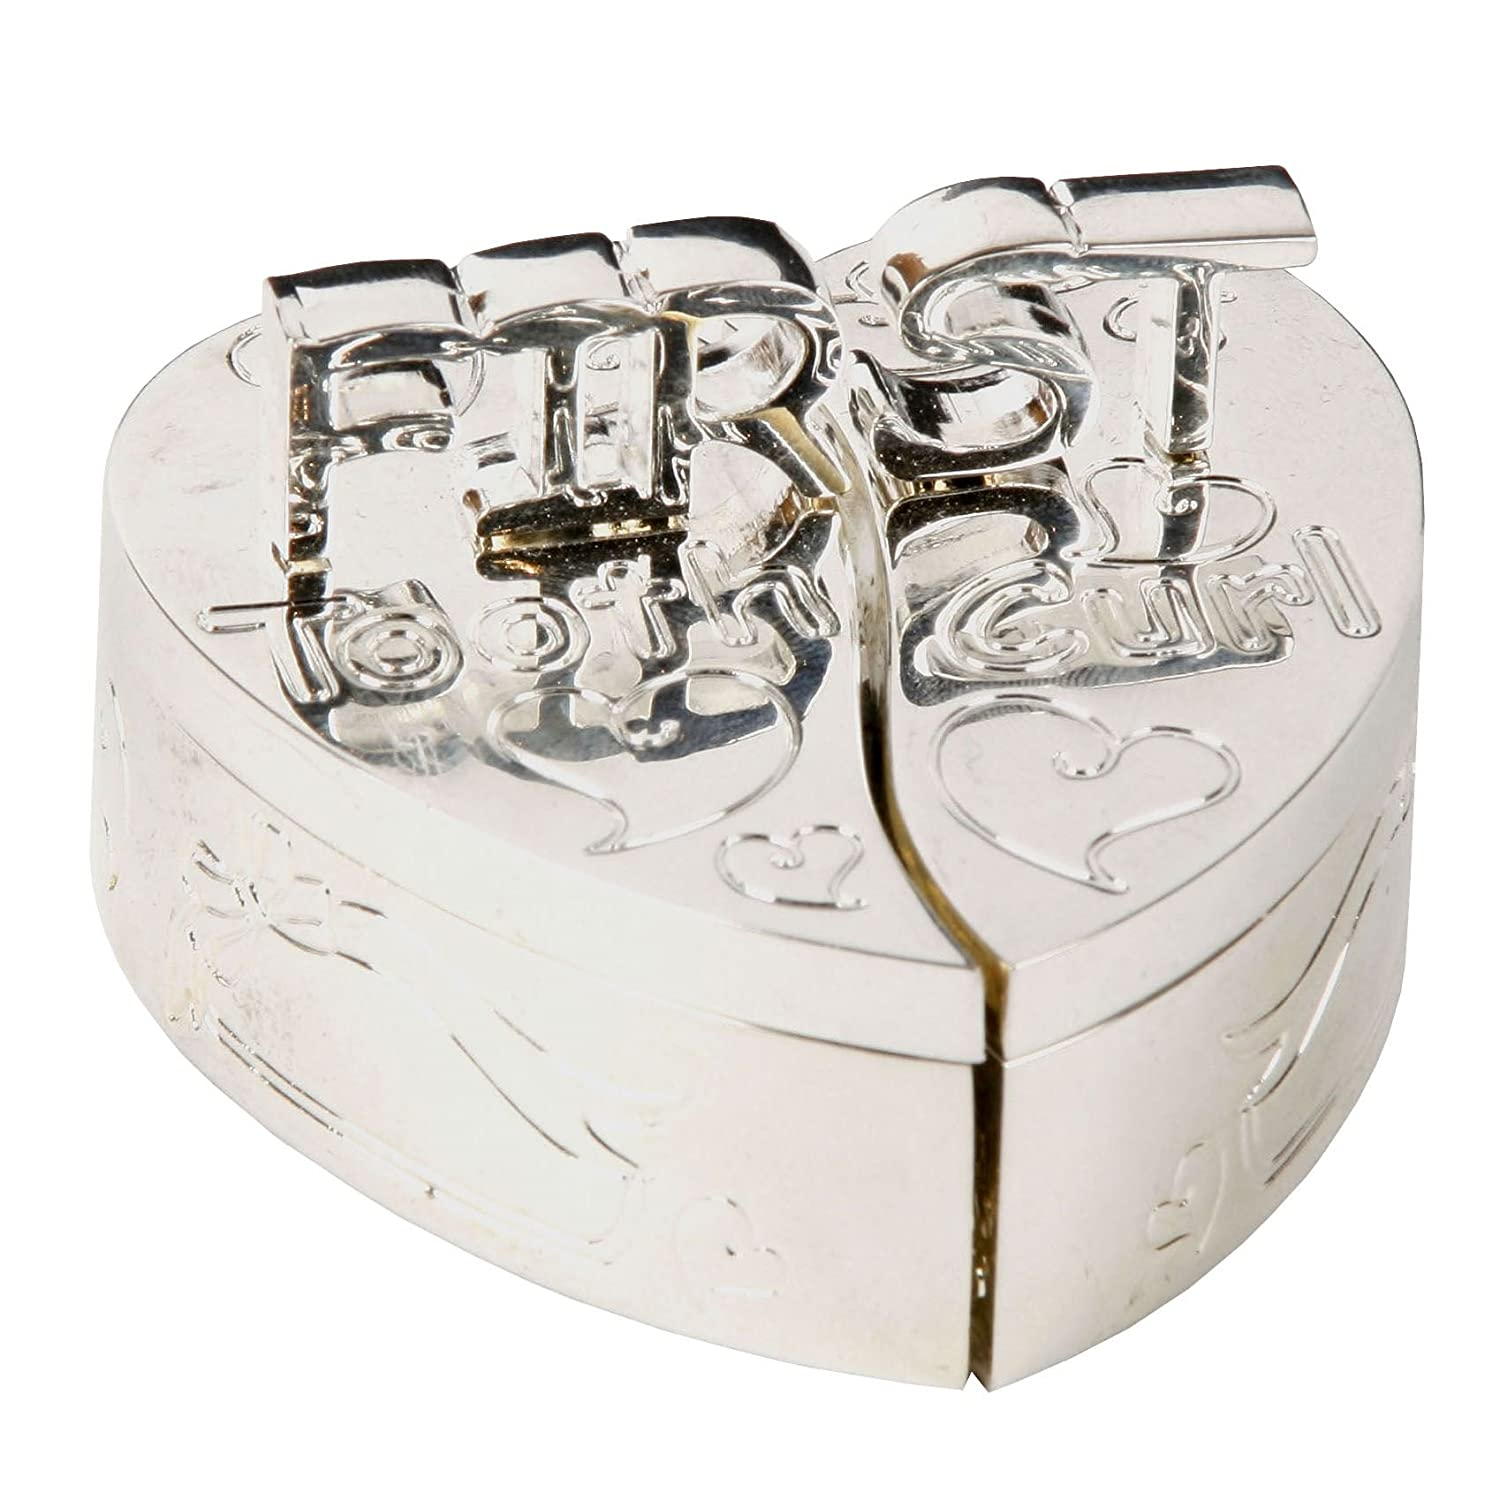 First Tooth and First Curl Heart Shaped Box Set Silver Plated CG140 Juliana